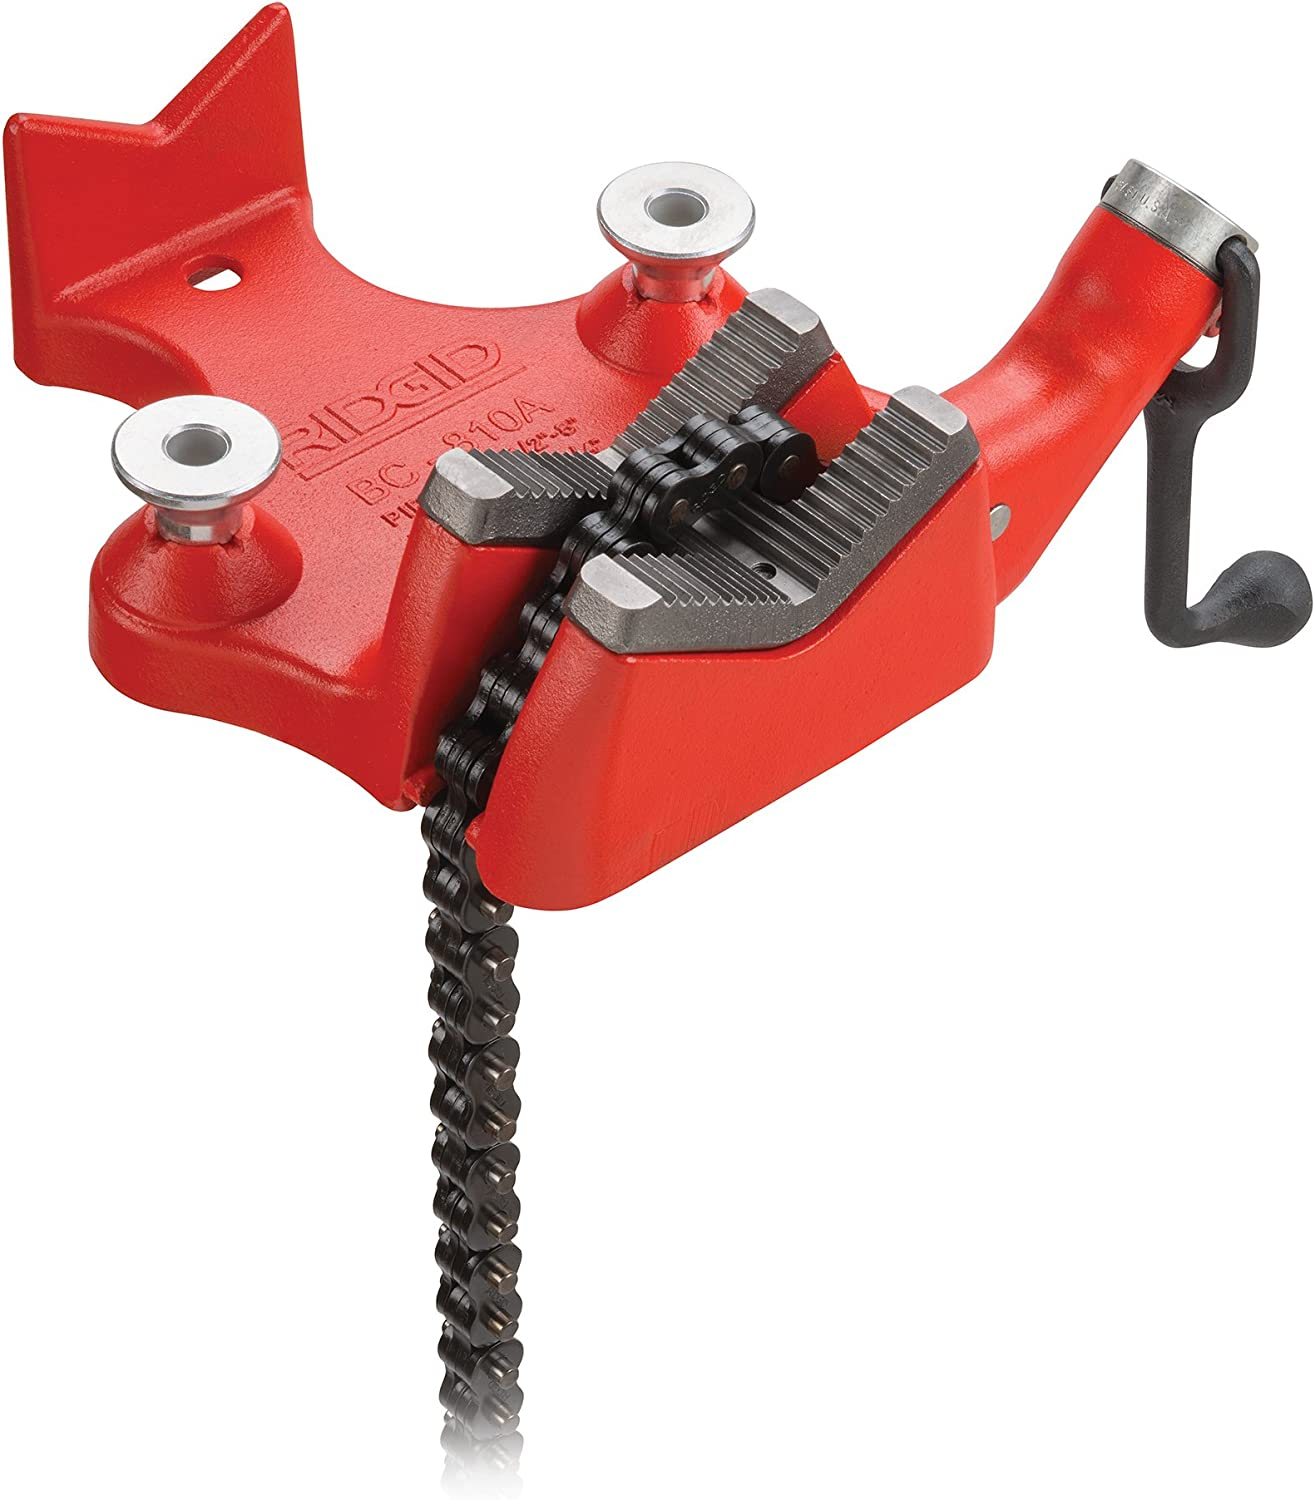 RIDGID 40215 Model BC810 Top Screw Vise 2-inch Chain to Boston ! Super beauty product restock quality top! Mall Bench 1